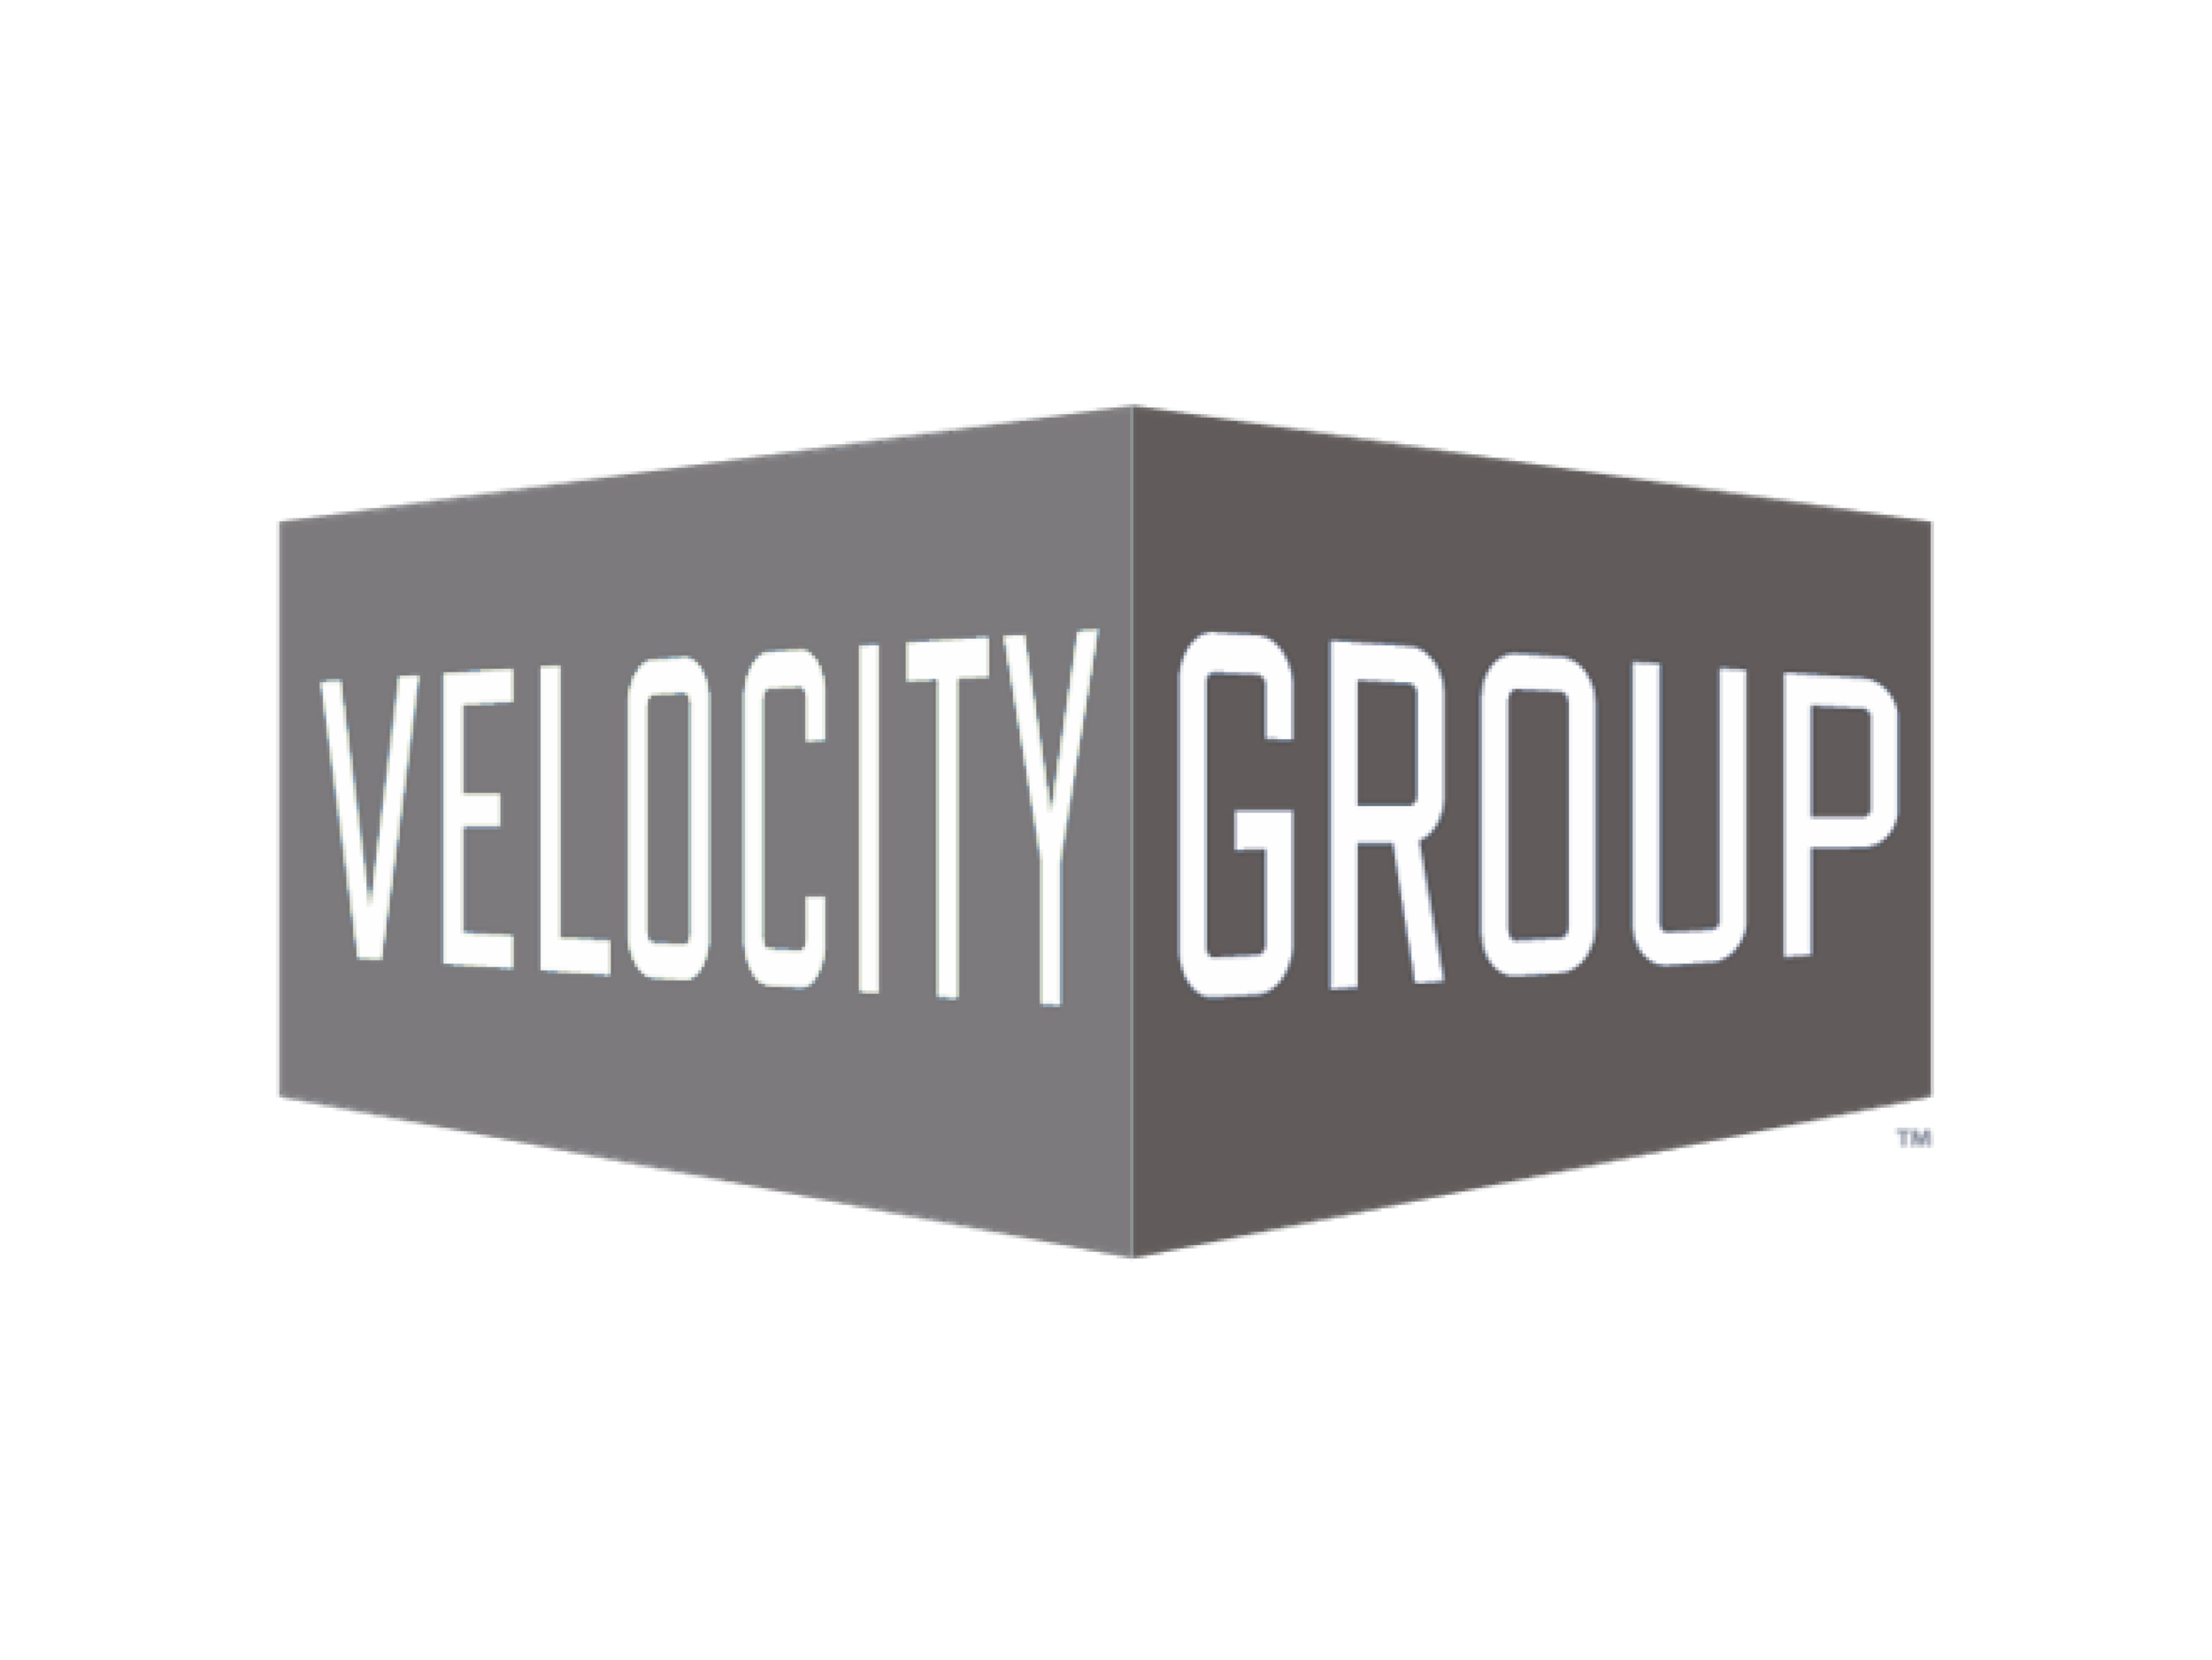 Velocity Group.png